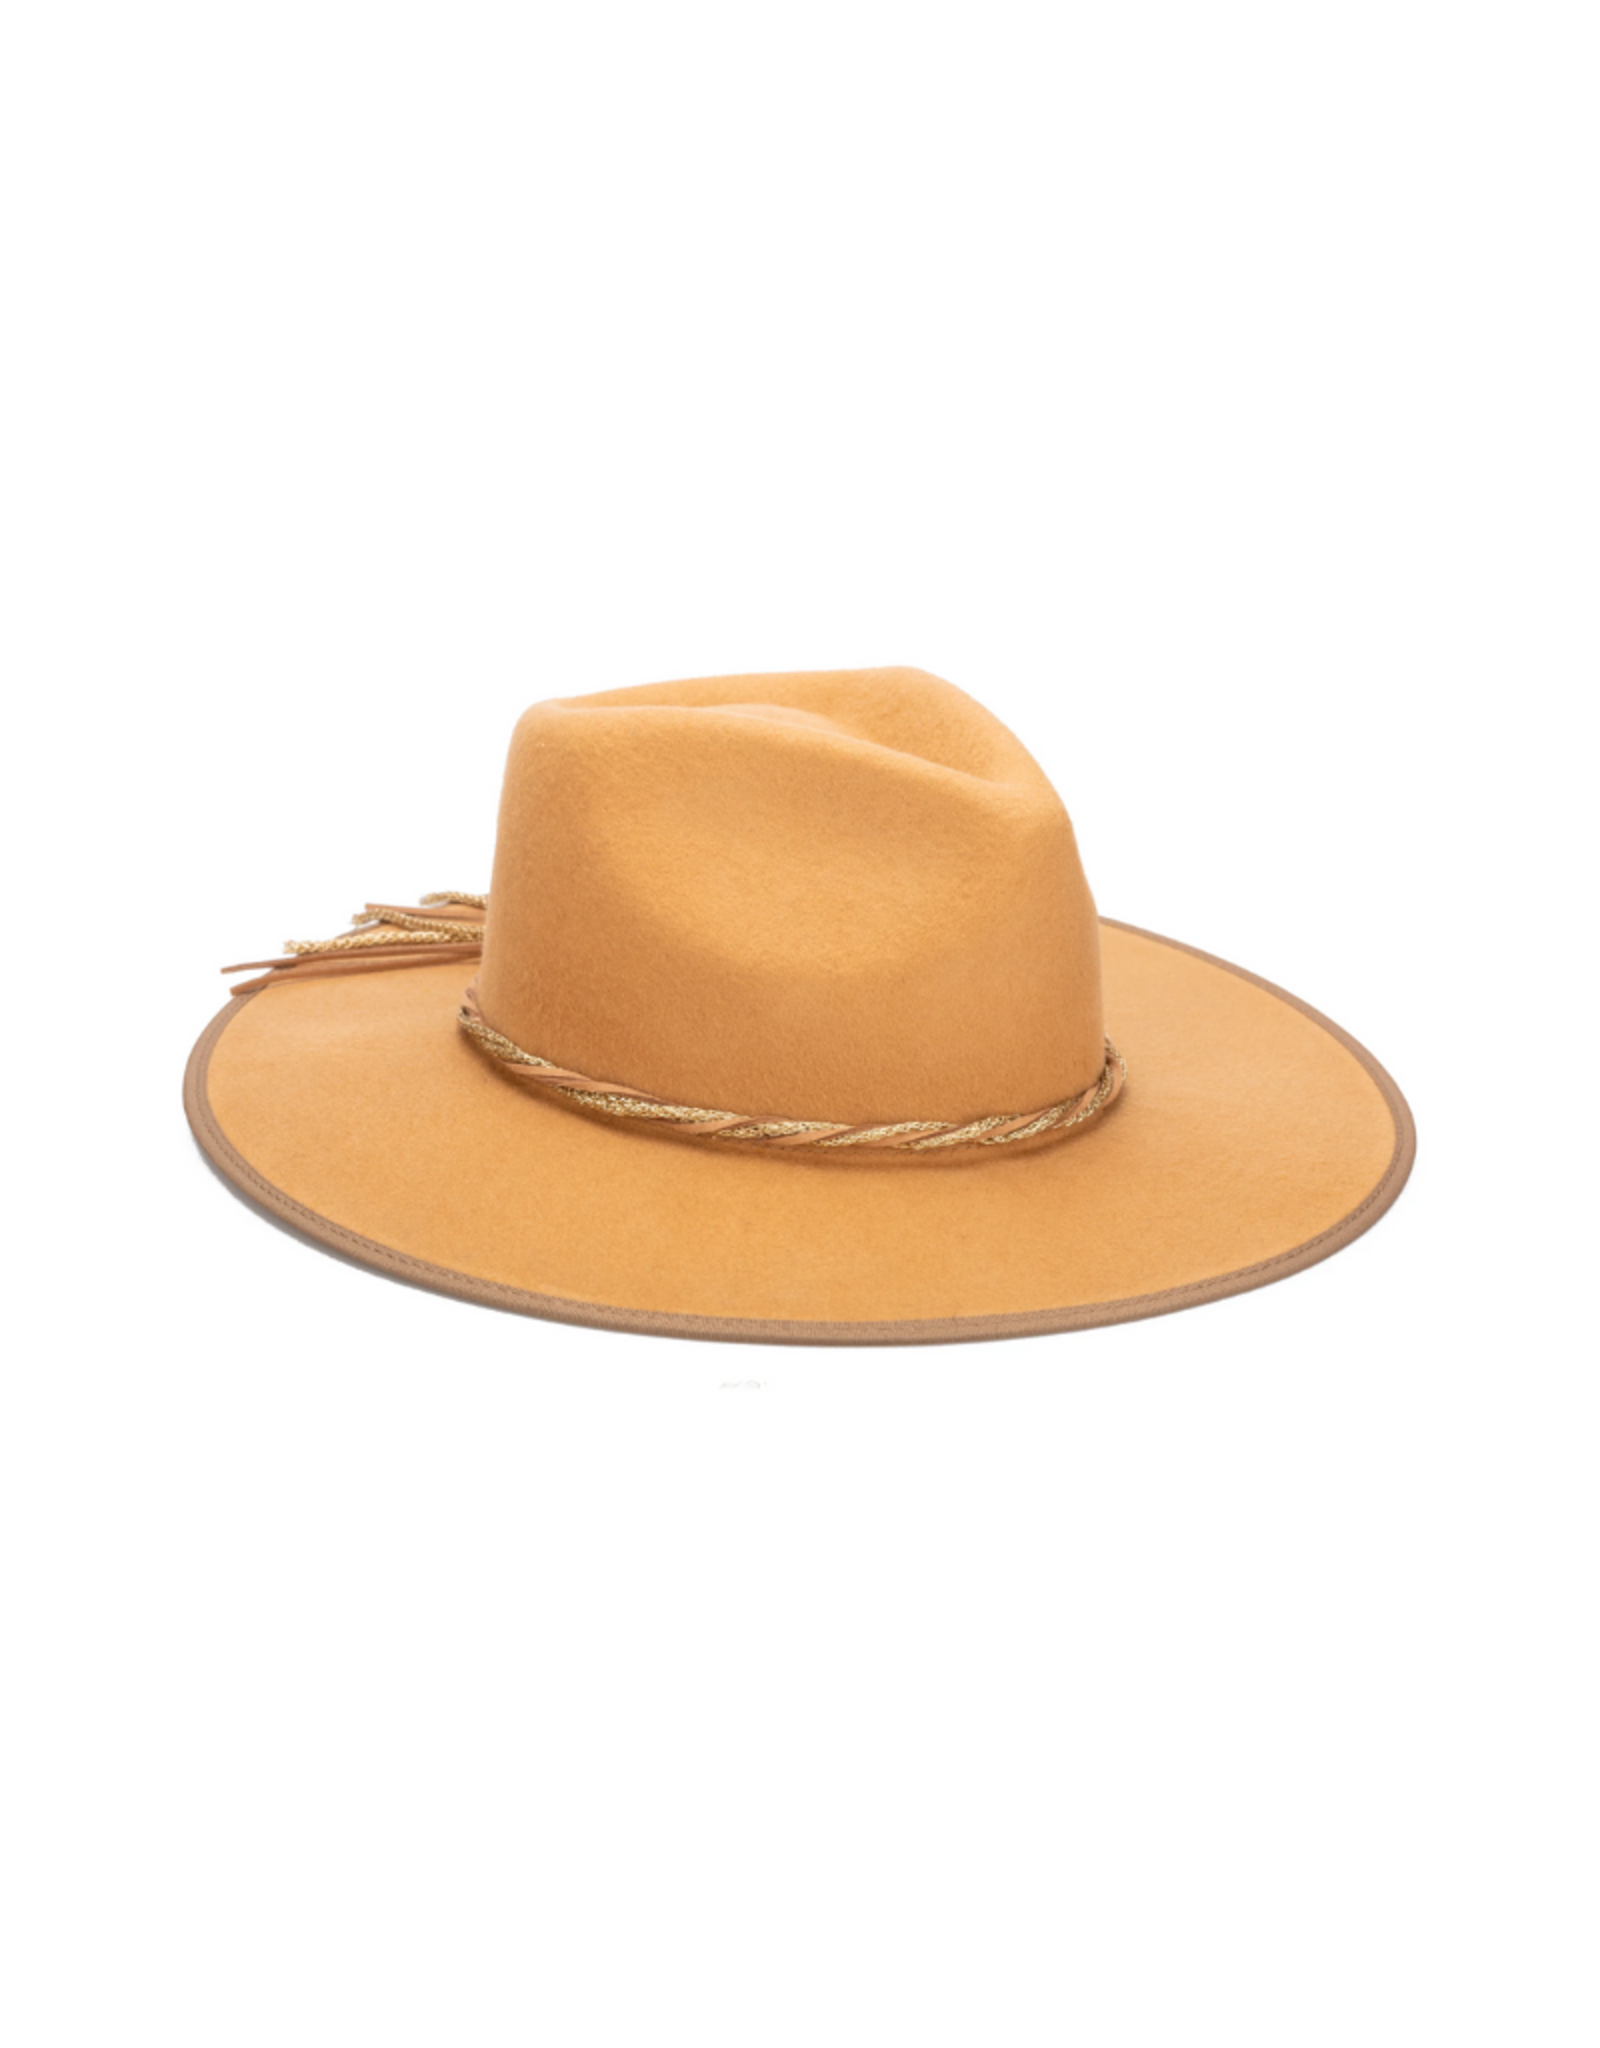 HAT-WIDE BRIM-GOLD RUSH-TWISTED BAND CAMEL